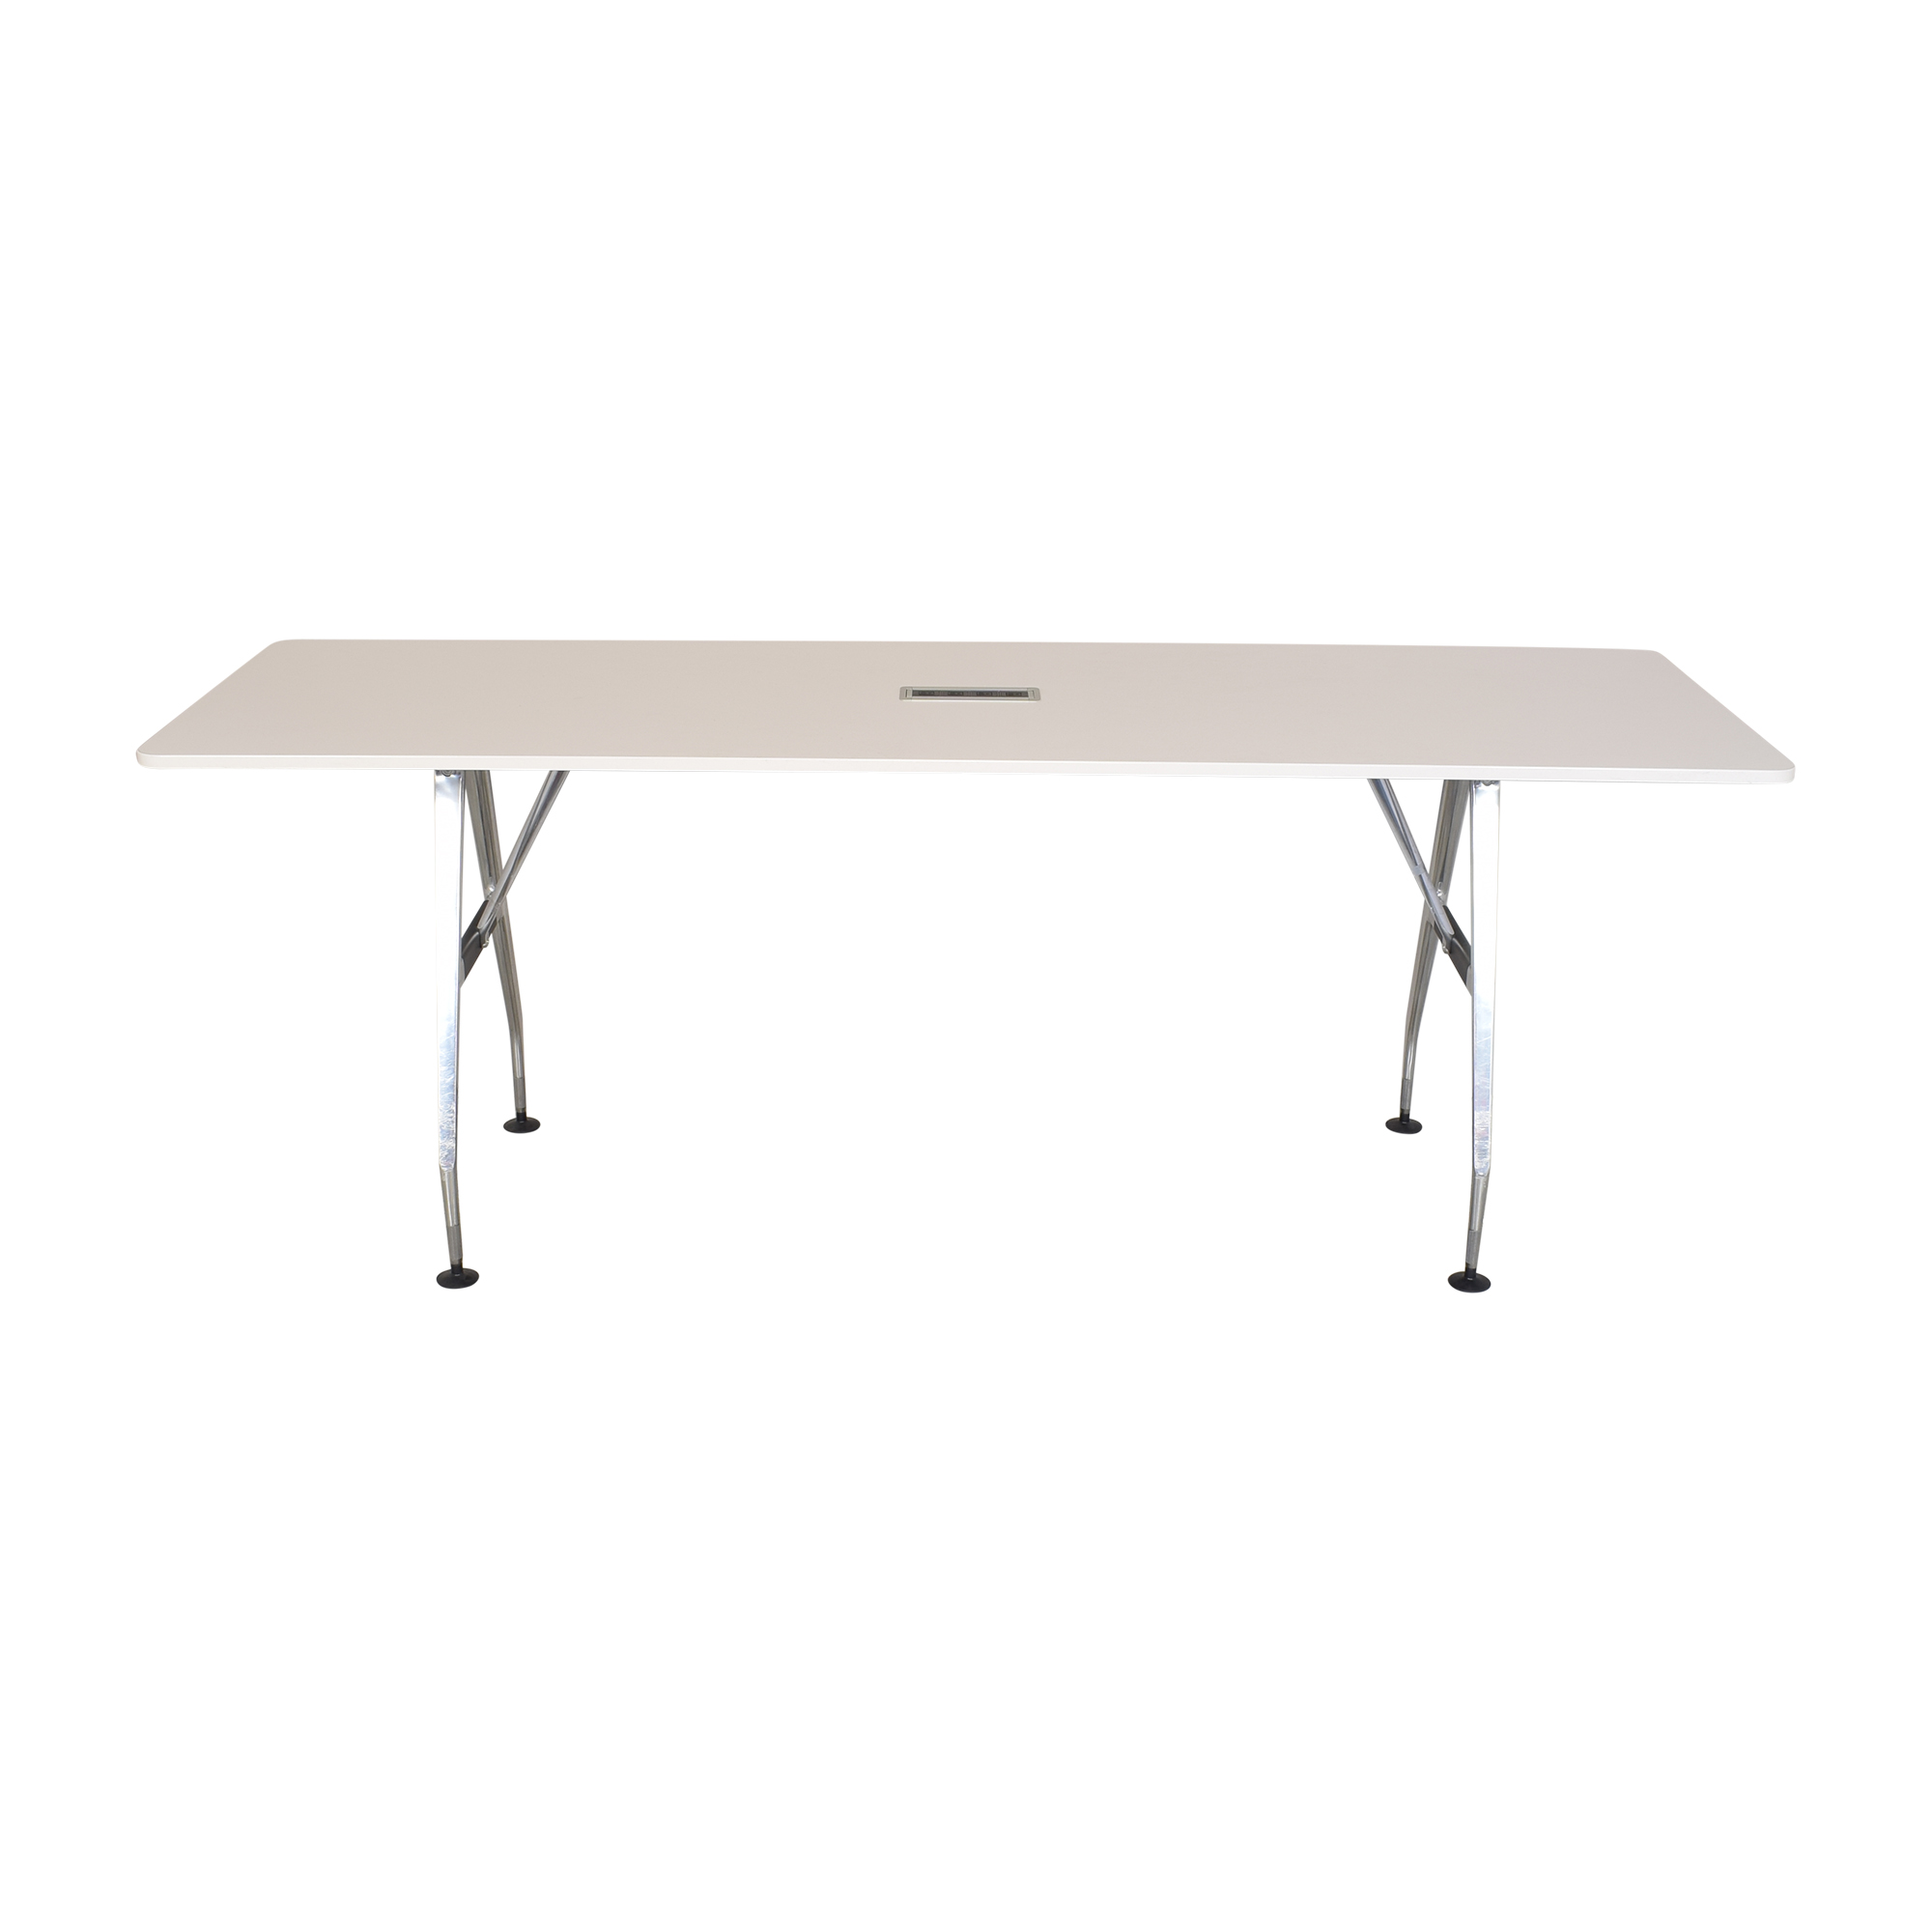 Vitra Vitra Ad Hoc Solitaire Meeting Table second hand